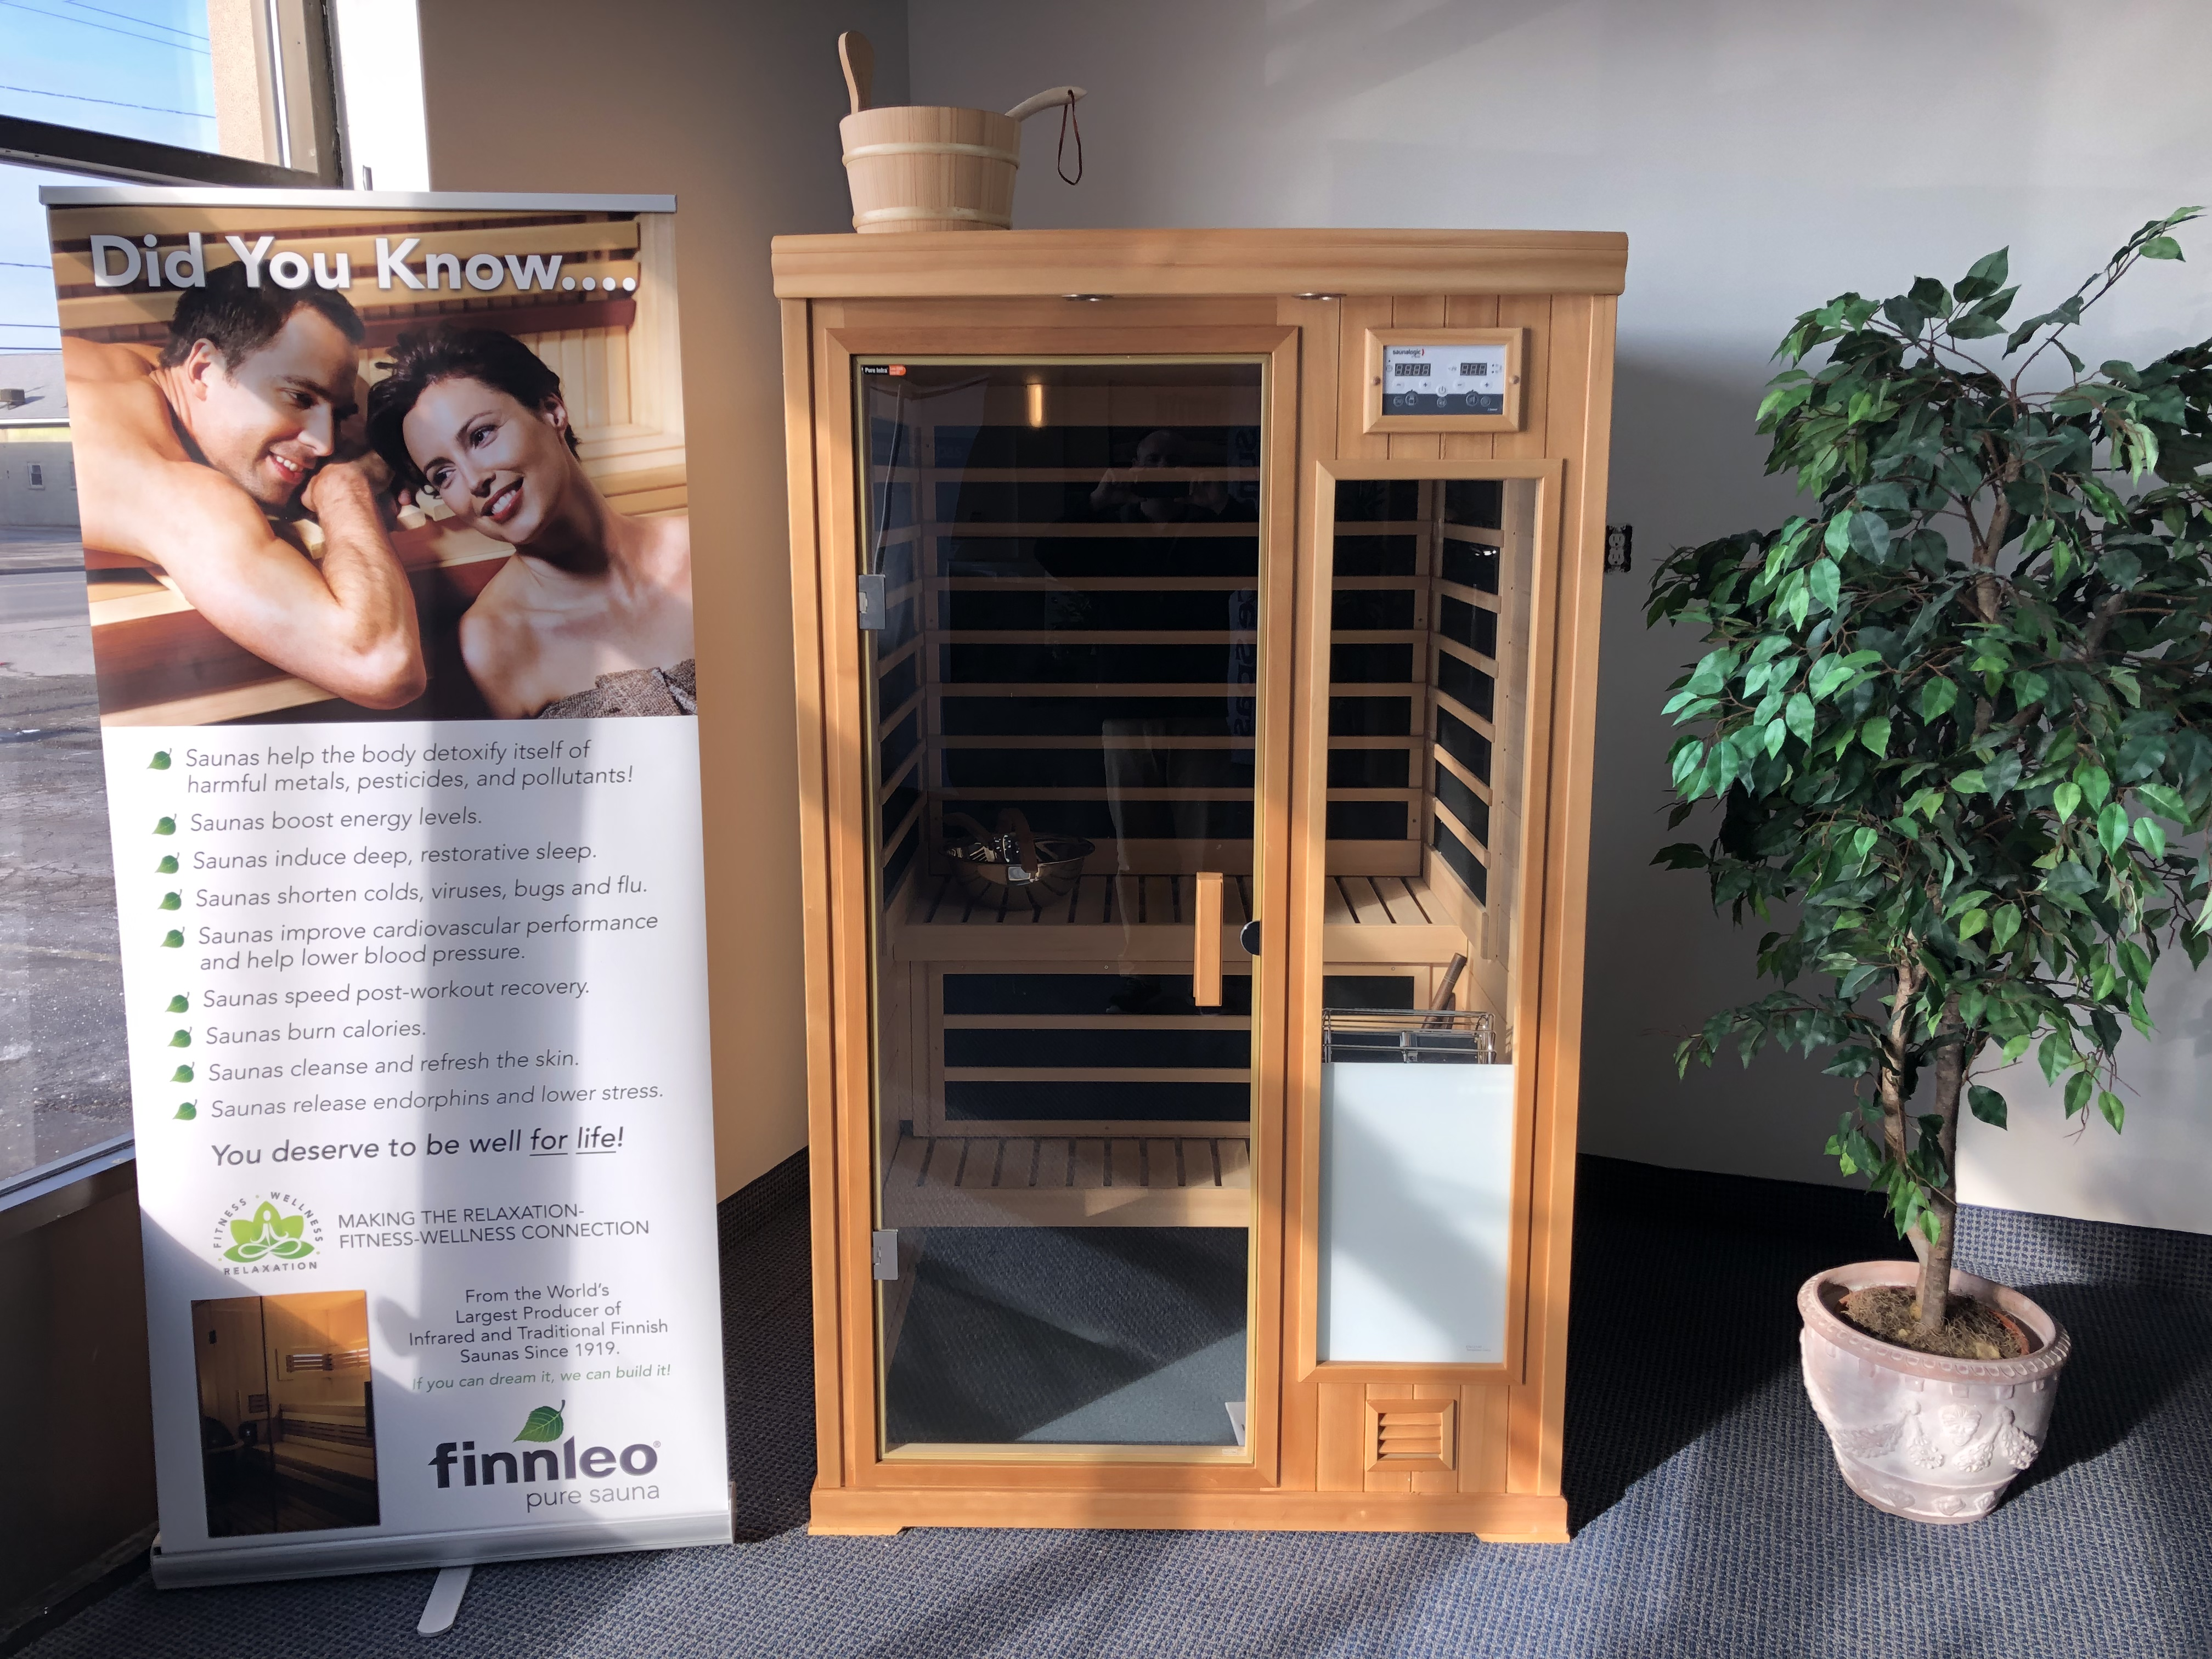 Finnleo Saunas hybrid combination infrared and traditional sauna store sales specials near me St Catharines Niagara Ontari